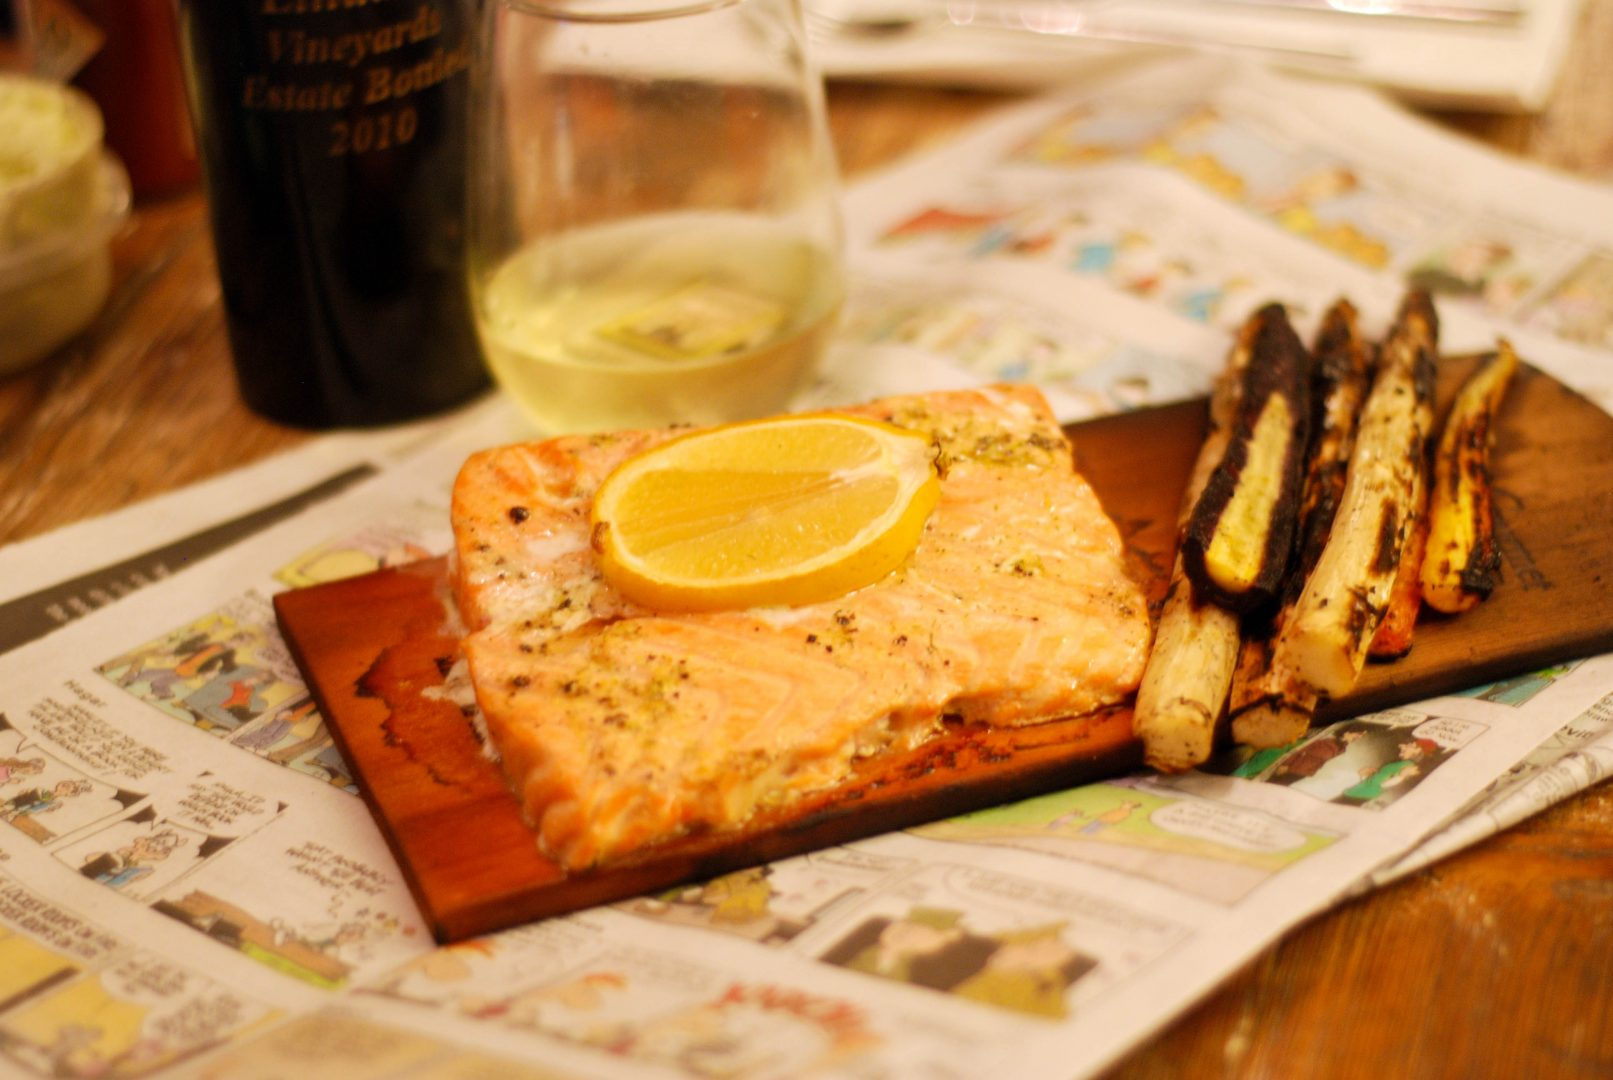 Cedar Planked Salmon with Lemon-Dill Butter and Grilled Rainbow Carrots